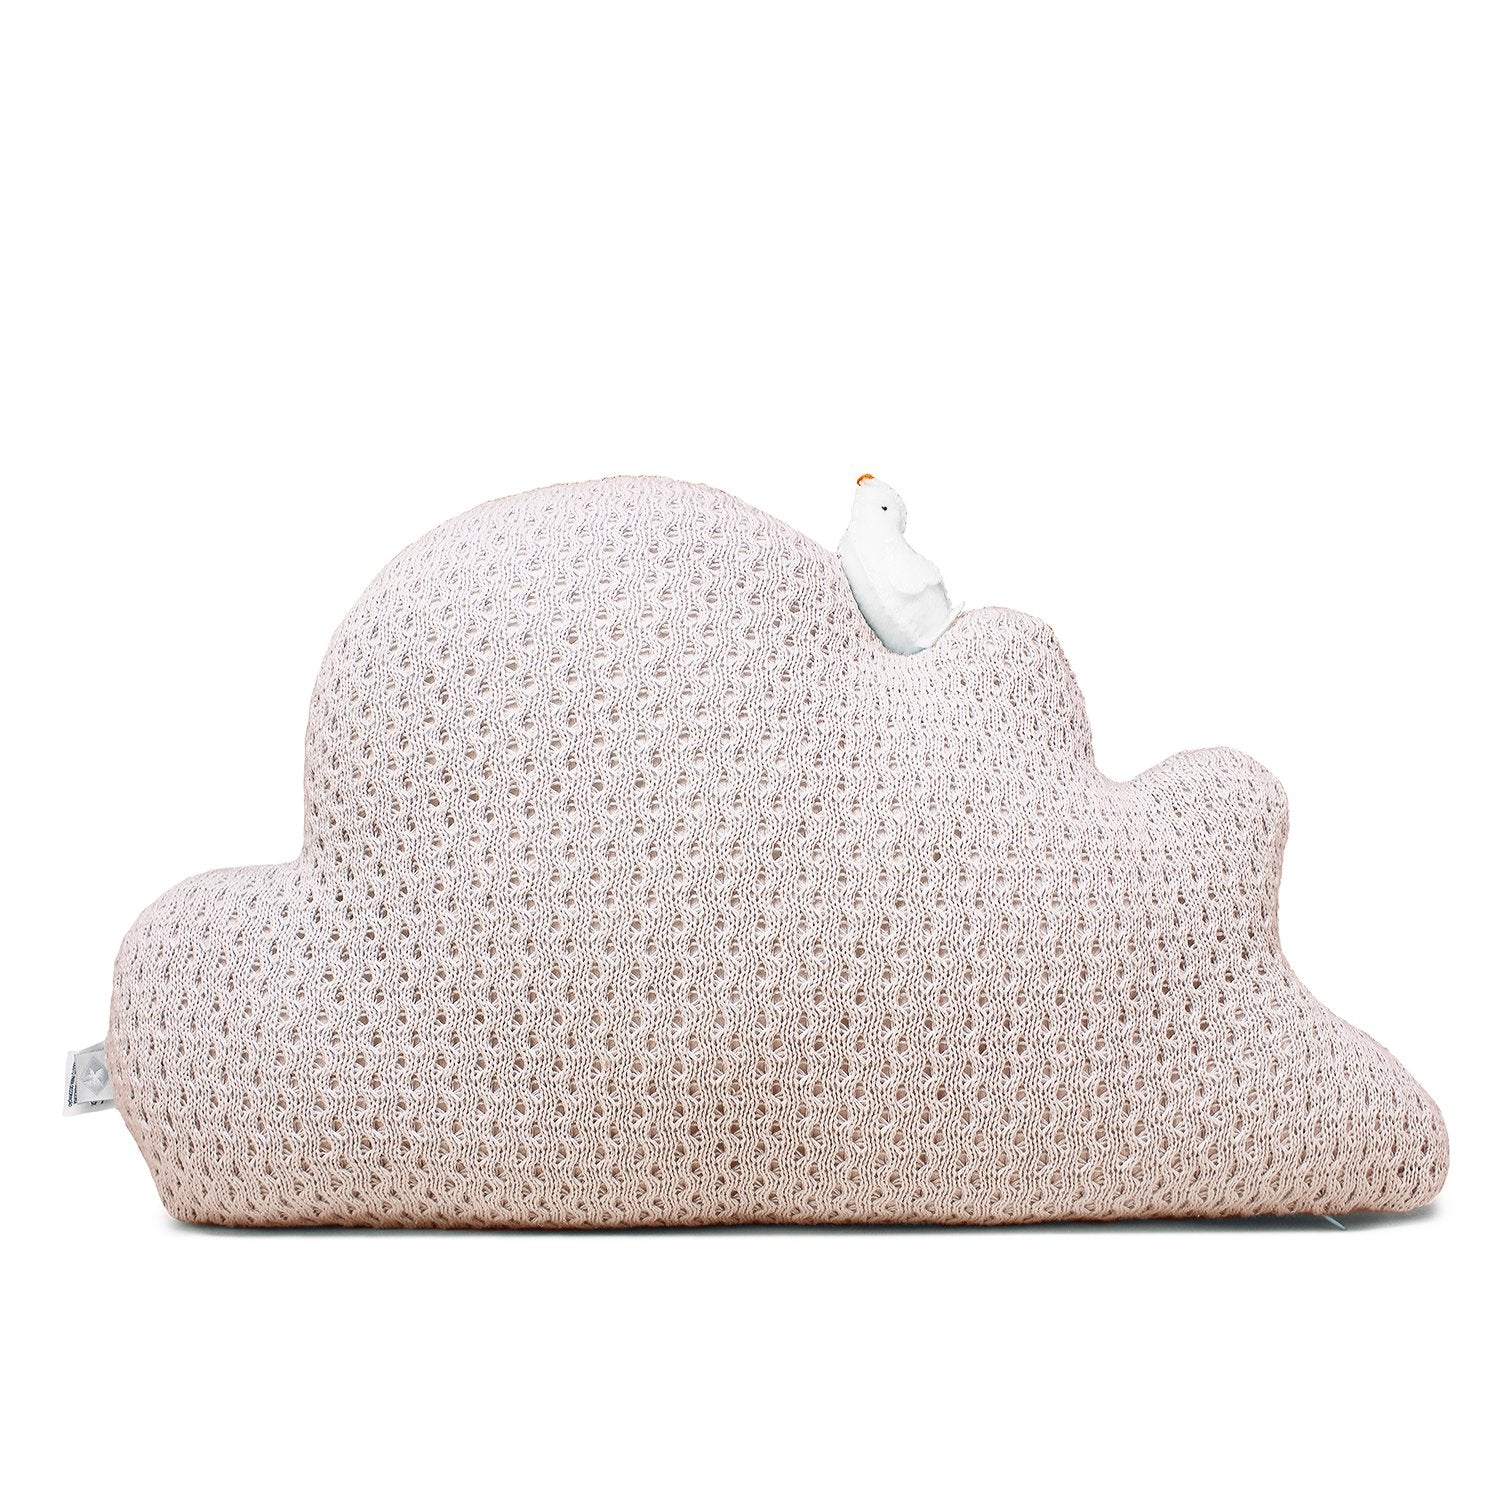 Rian TricotCushion CLOUD W/ LITTLE BIRD